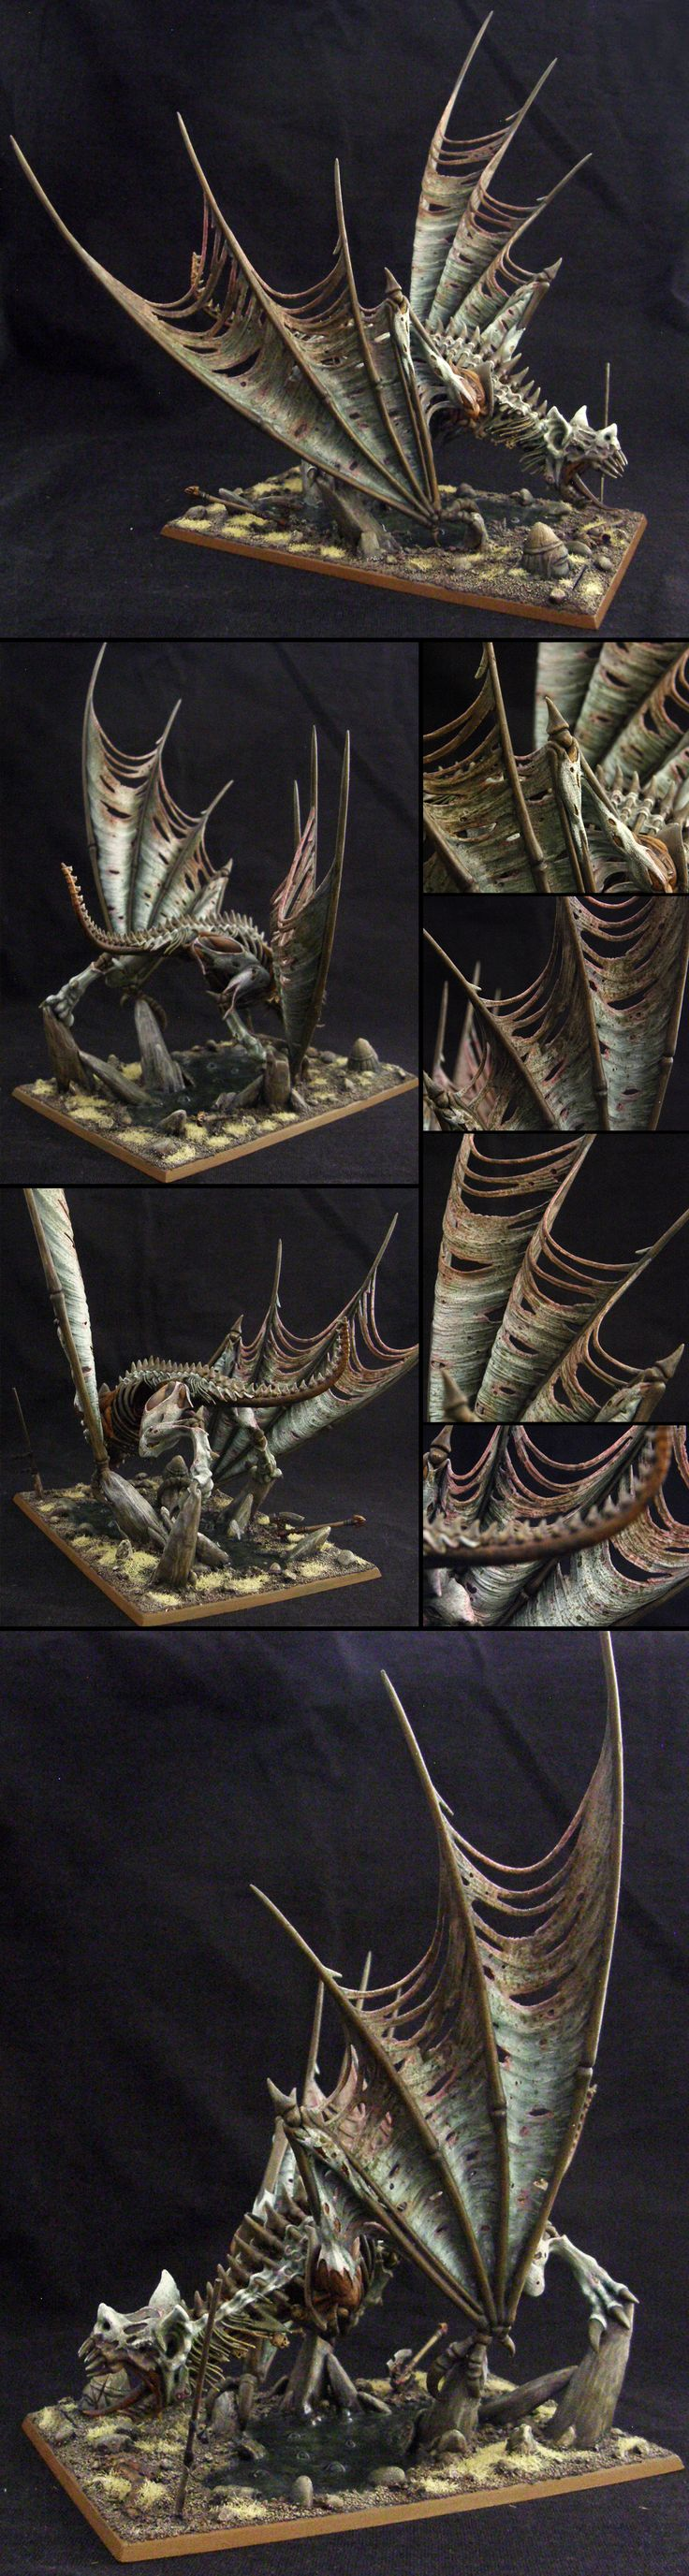 Terrorgheist miniature painted for Warhammer Fantasy Battle, or Age of Sigmar if need be. Giant undead dragon-sized bat. I gave it some simple swamp basing. In AoS it would belong to the Flesh-Eater Courts, Death Grand Alliance.